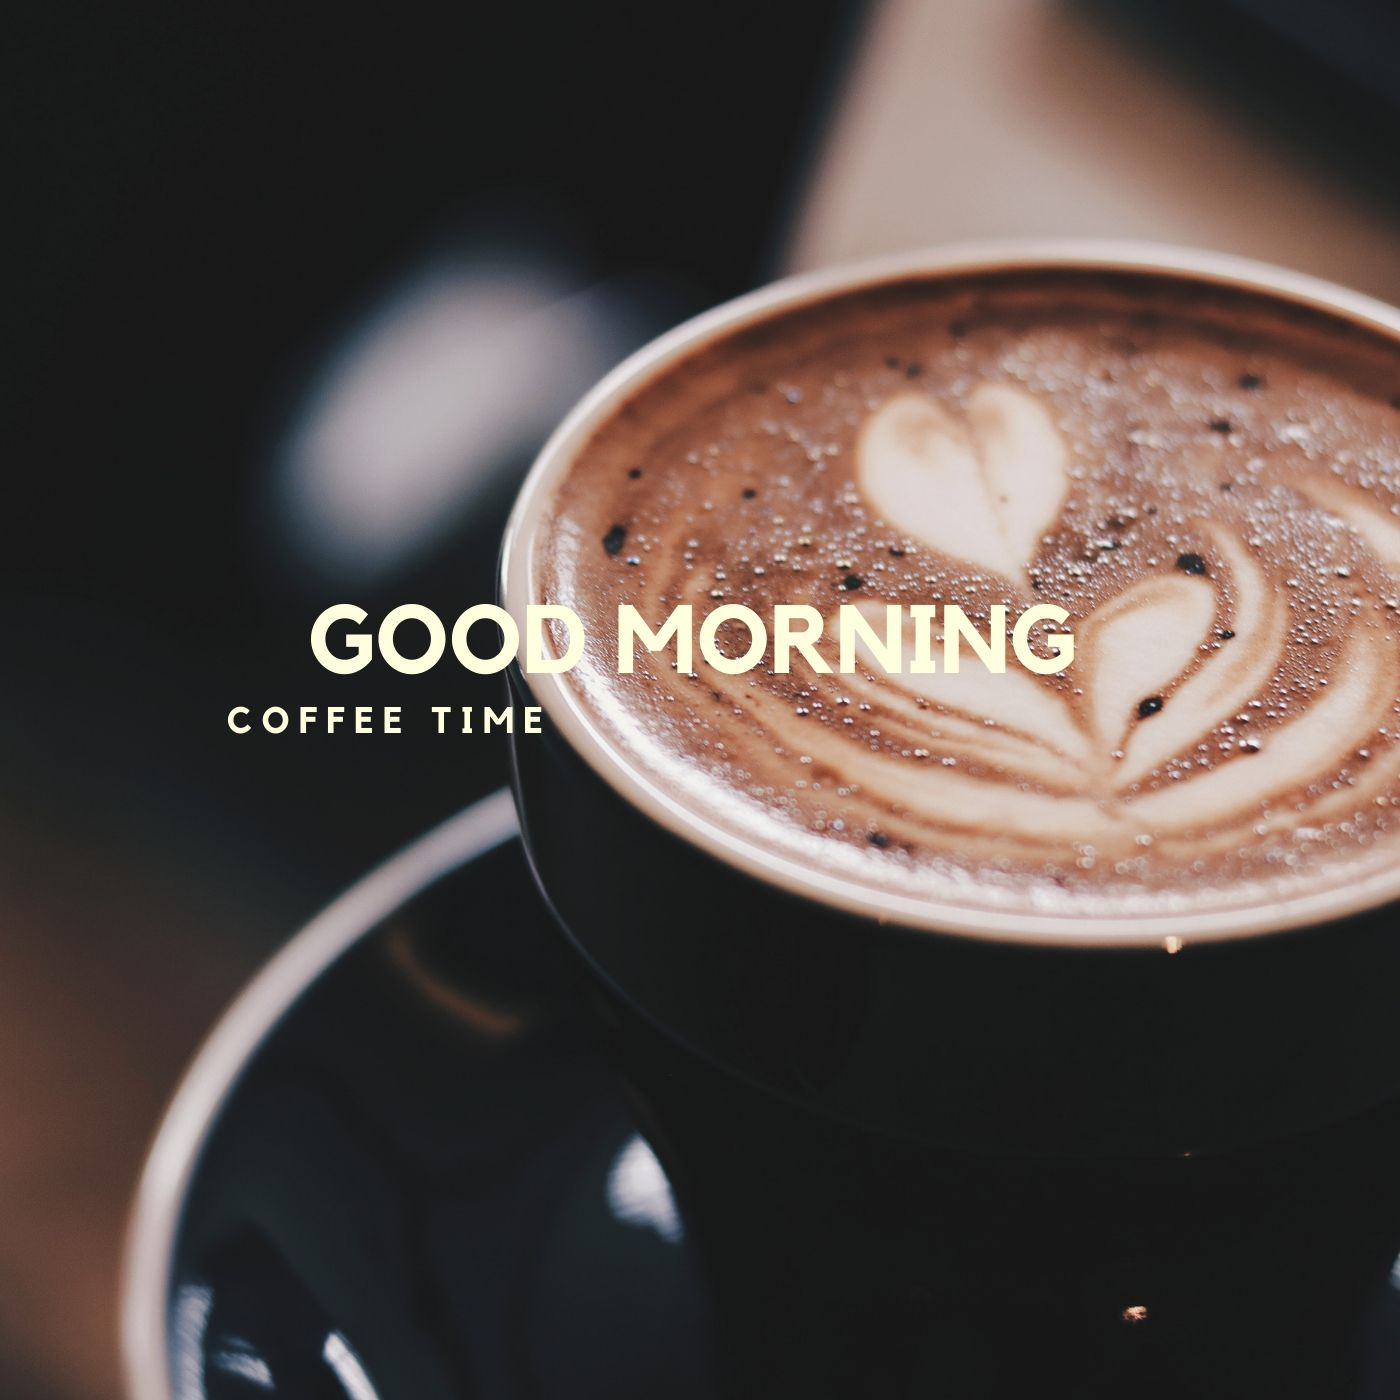 Good Morning Coffe Time Image full HD free download.